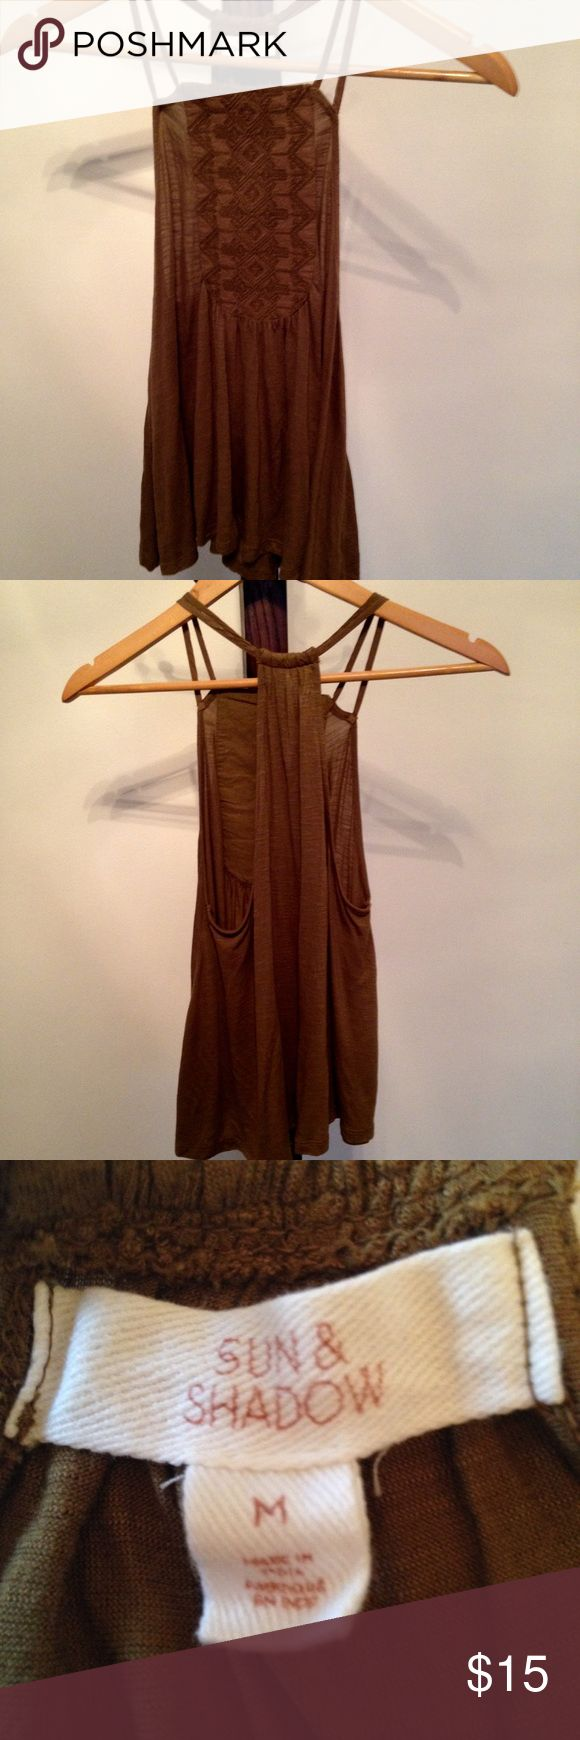 Sun and Shadow Brown Tank with Smocking Detail Sun and Shadow Brown Tank with Smocking Detail Sun and Shadow (Nordstrom) Tops Tank Tops